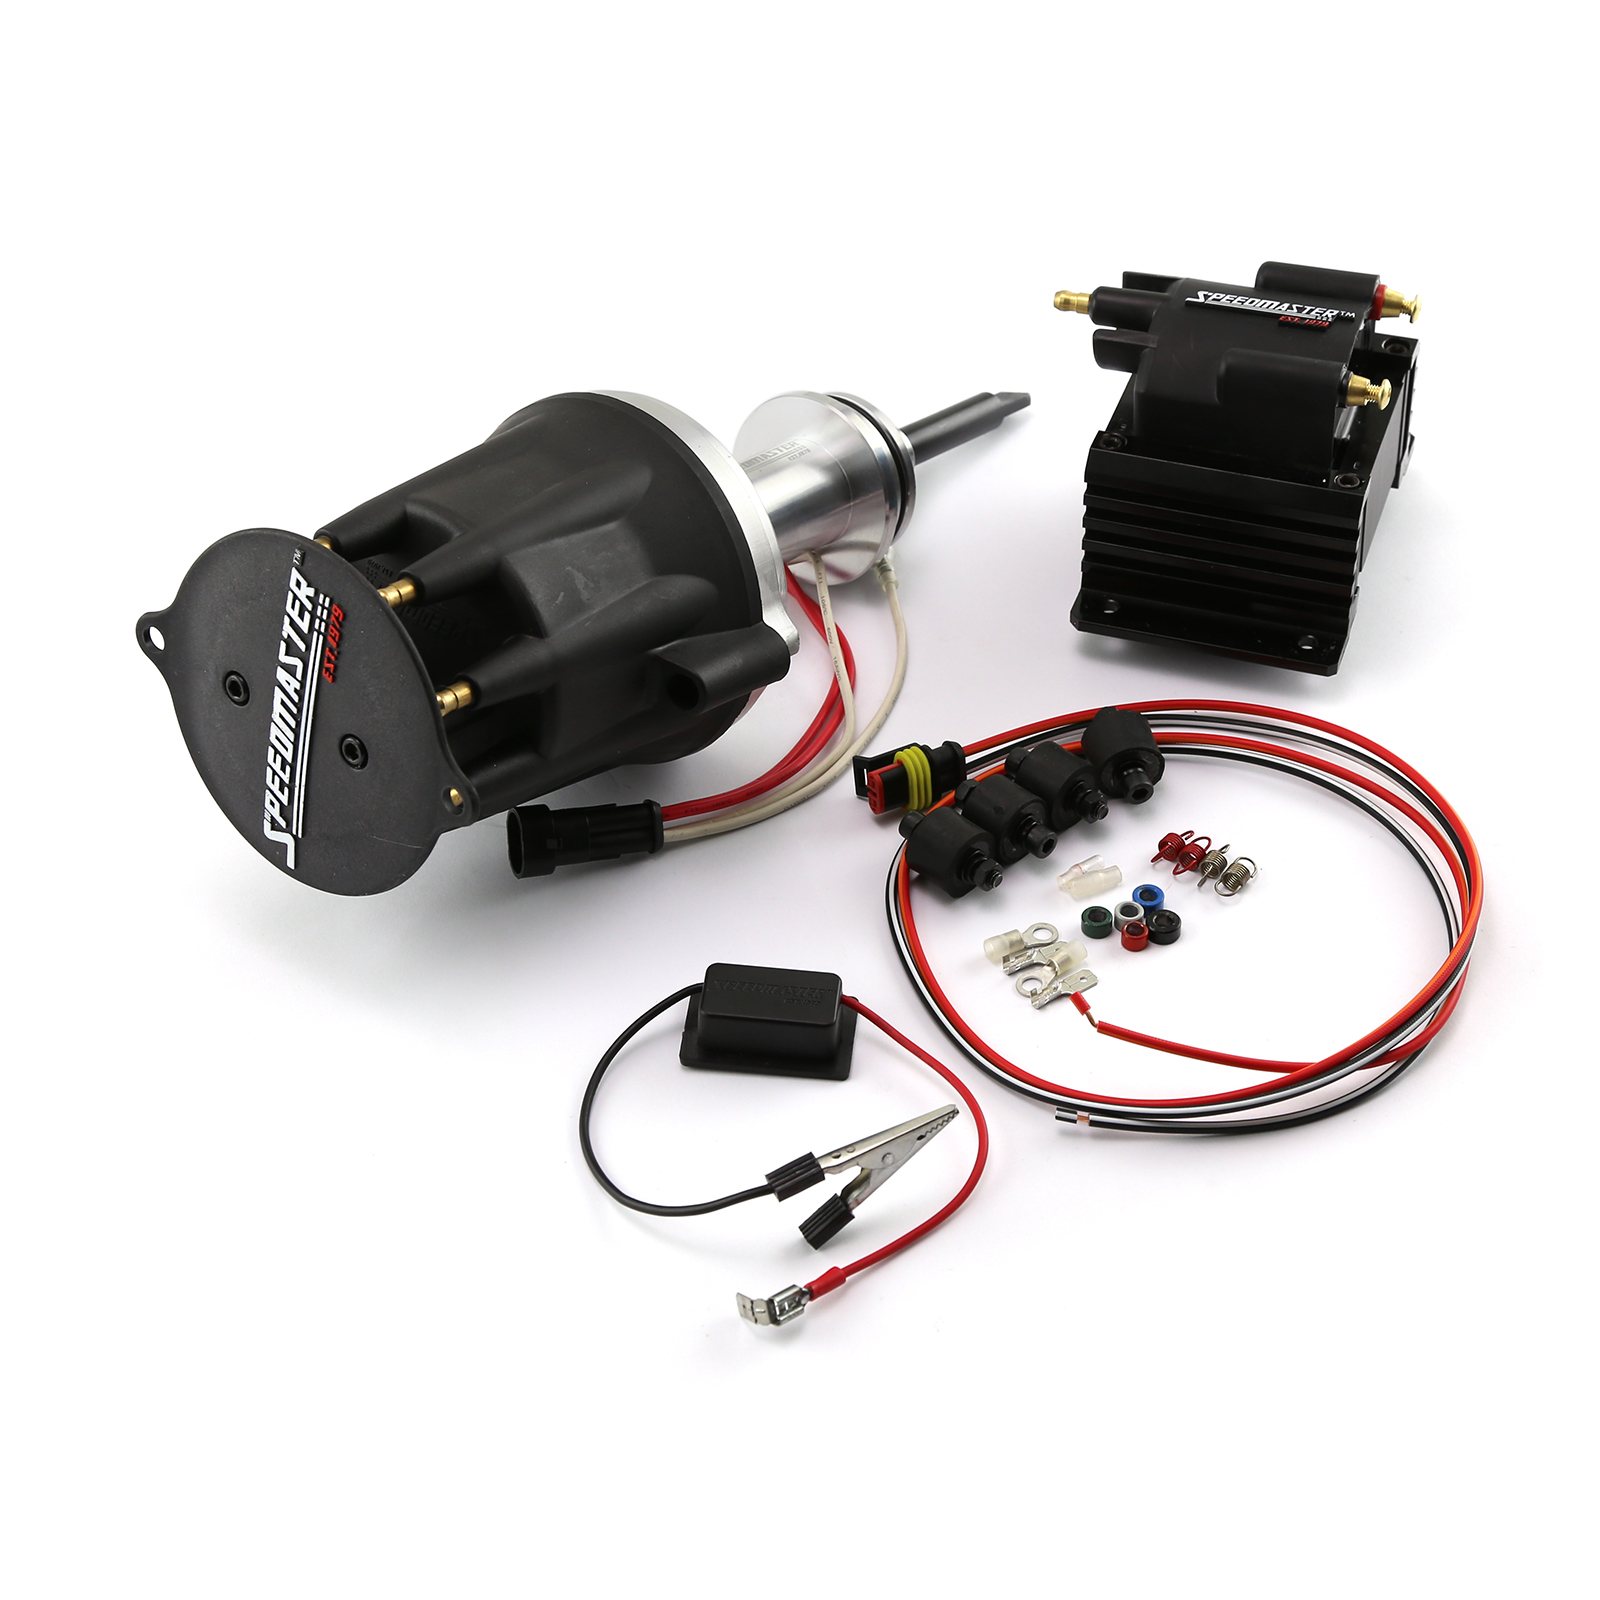 Mopar Chrysler SB 318 340 360 - El Rayo DNA® - Distributor Ignition Kit